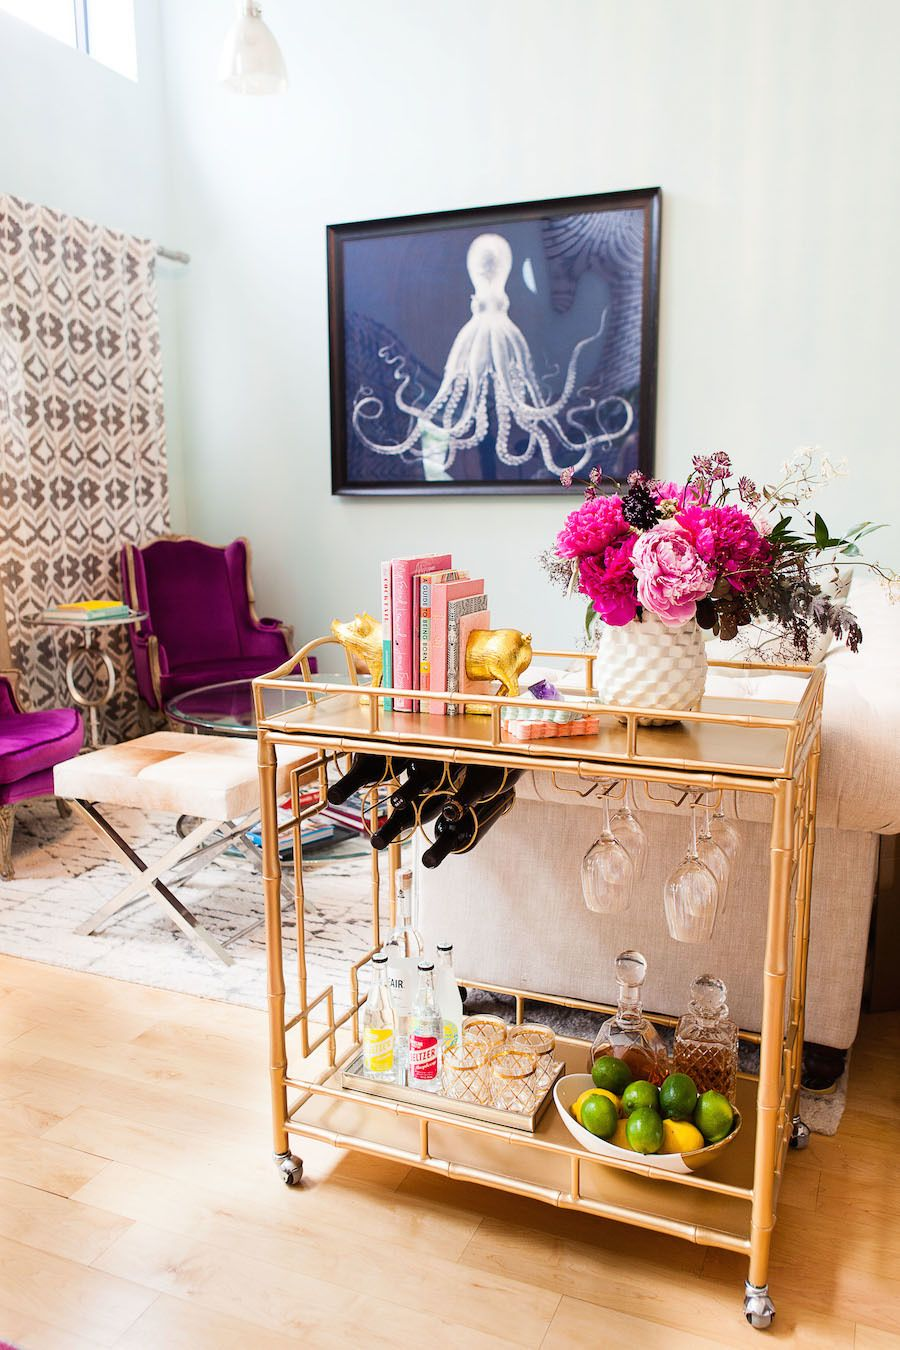 10 Bar Carts for Small Spaces That Will Change Your Decor Forever_1